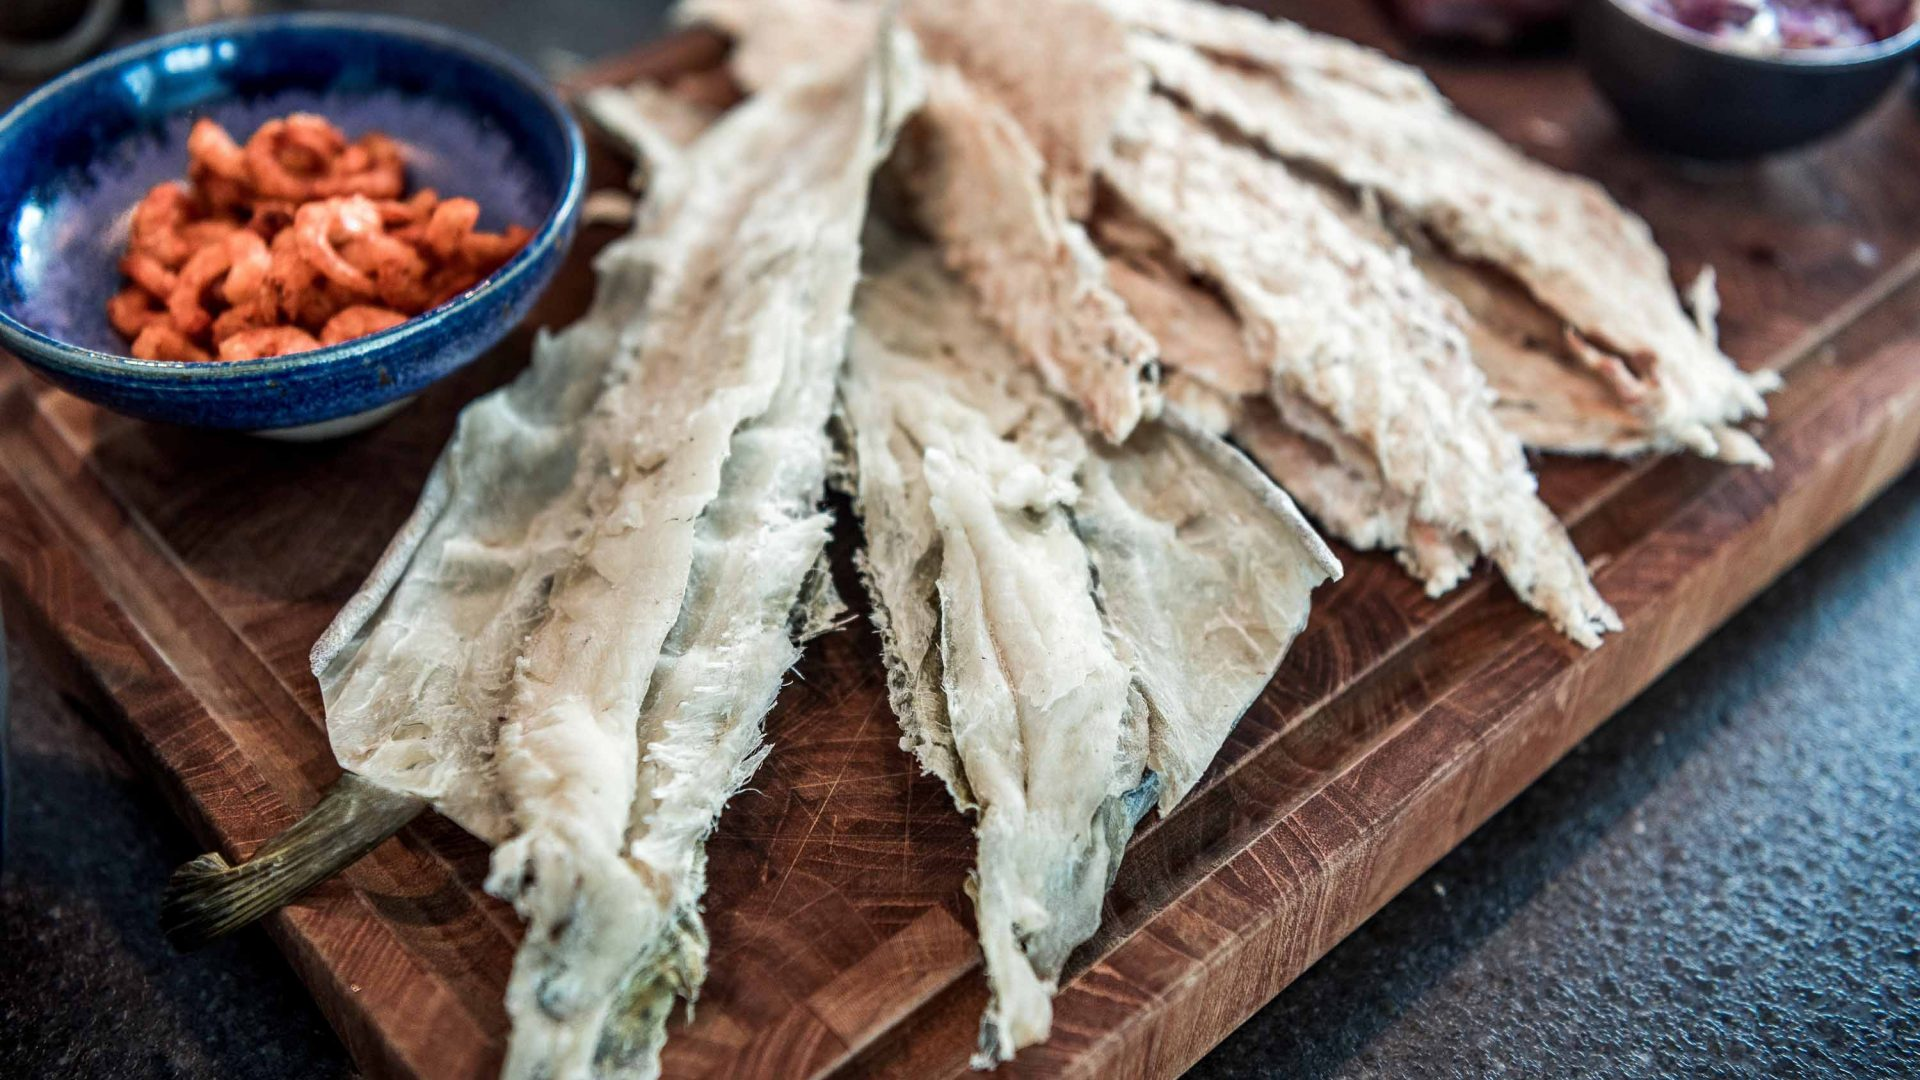 Food such as dried cod and dried shrimps is an integral part of the Inuit diet.